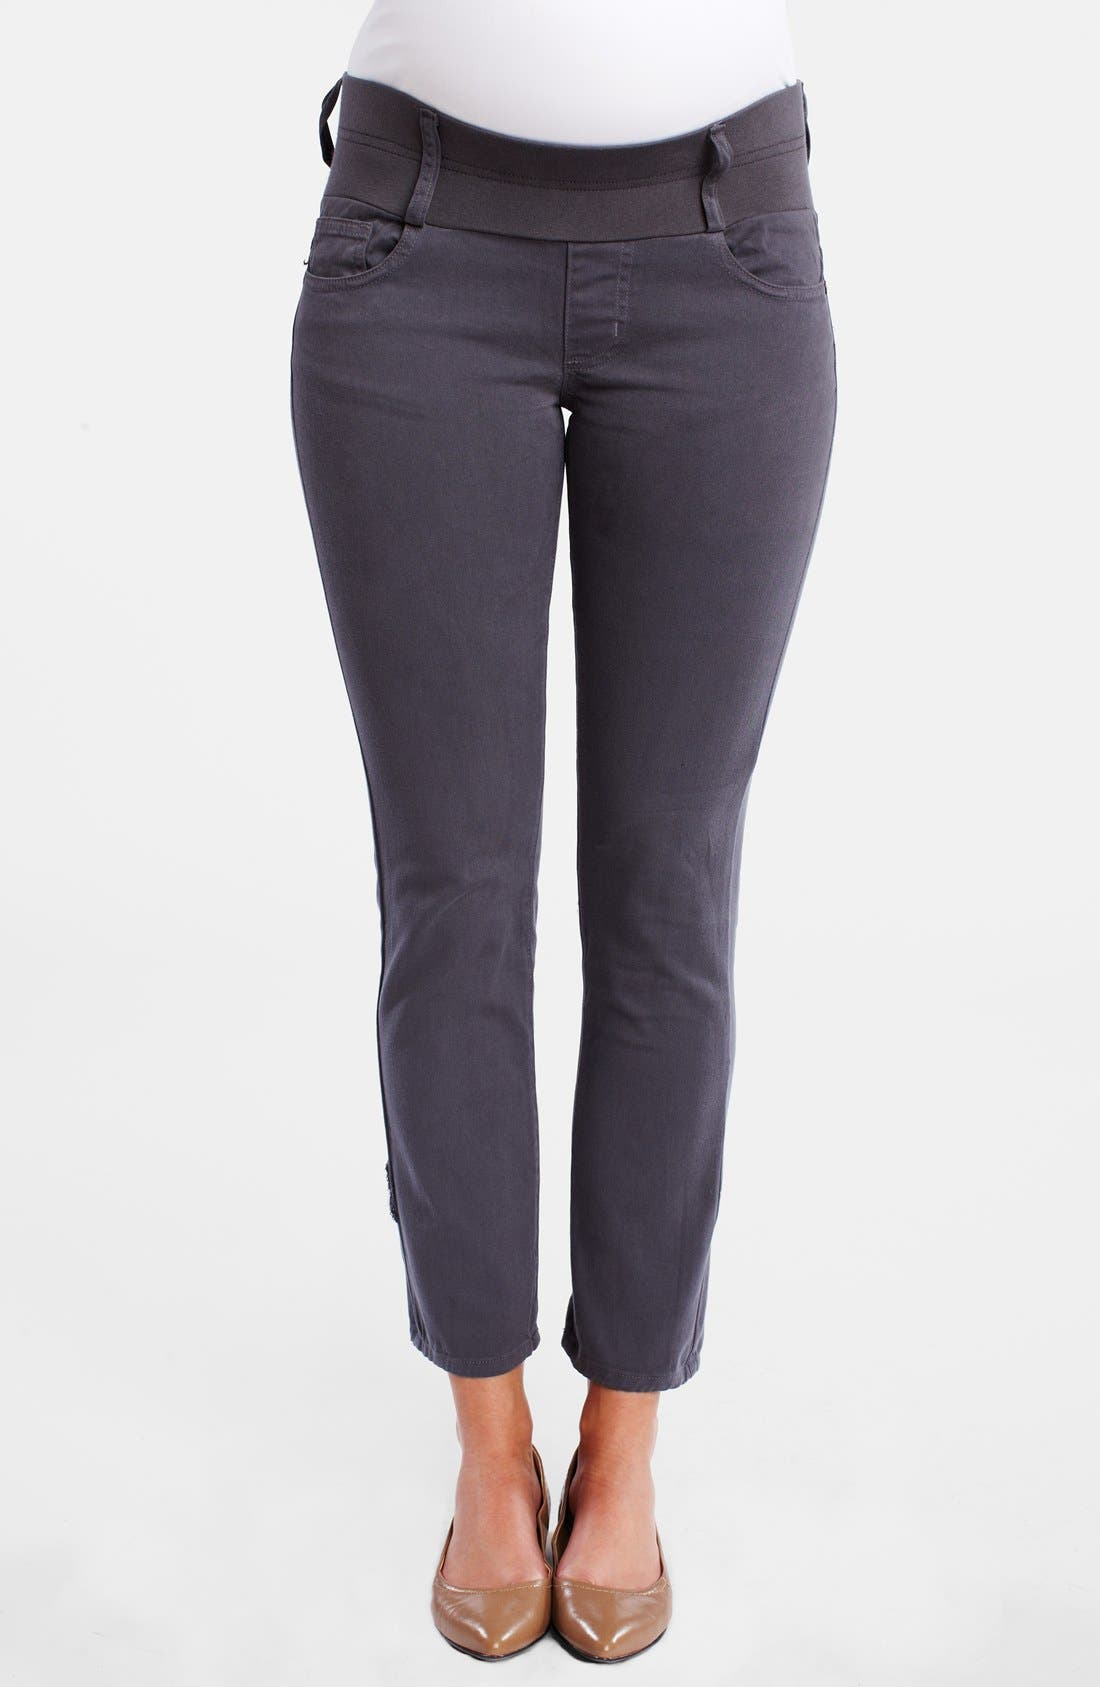 Maternity Skinny Ankle Stretch Jeans,                         Main,                         color, Cement Grey